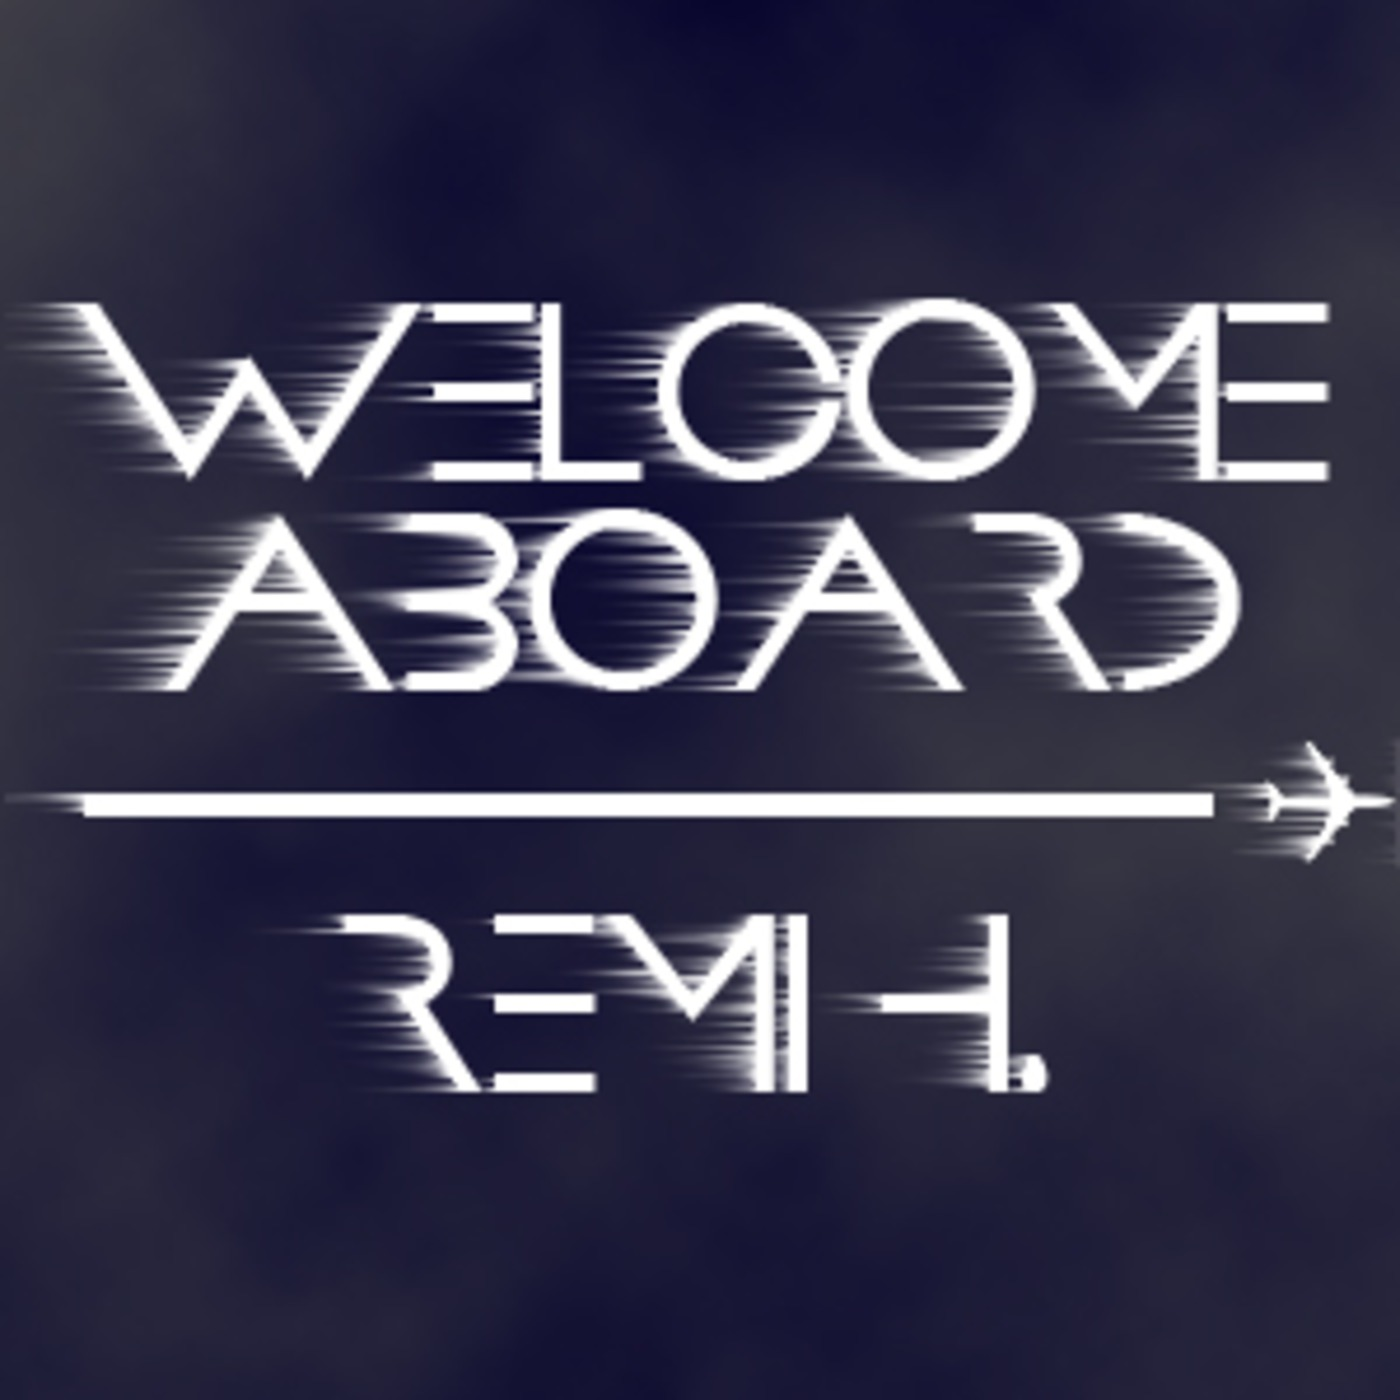 WELCOME ABOARD by Remi H.